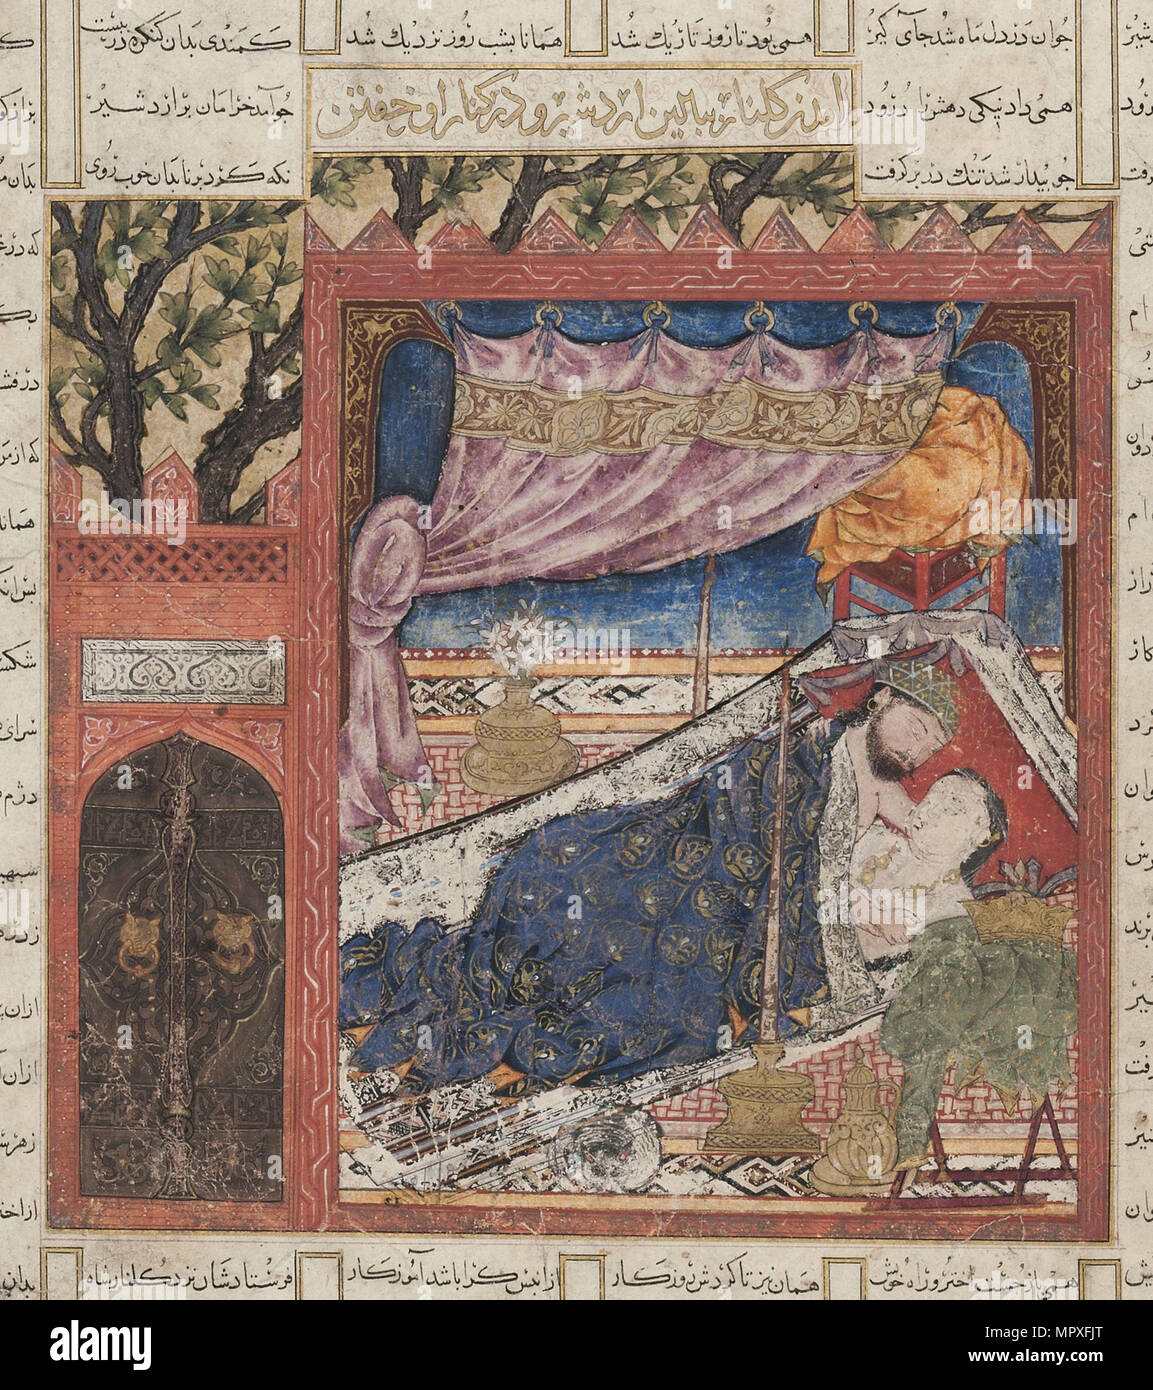 Ardashir in bed with the slave girl Gulnar. From the Shahnama (Book of Kings), 1335-1340. - Stock Image